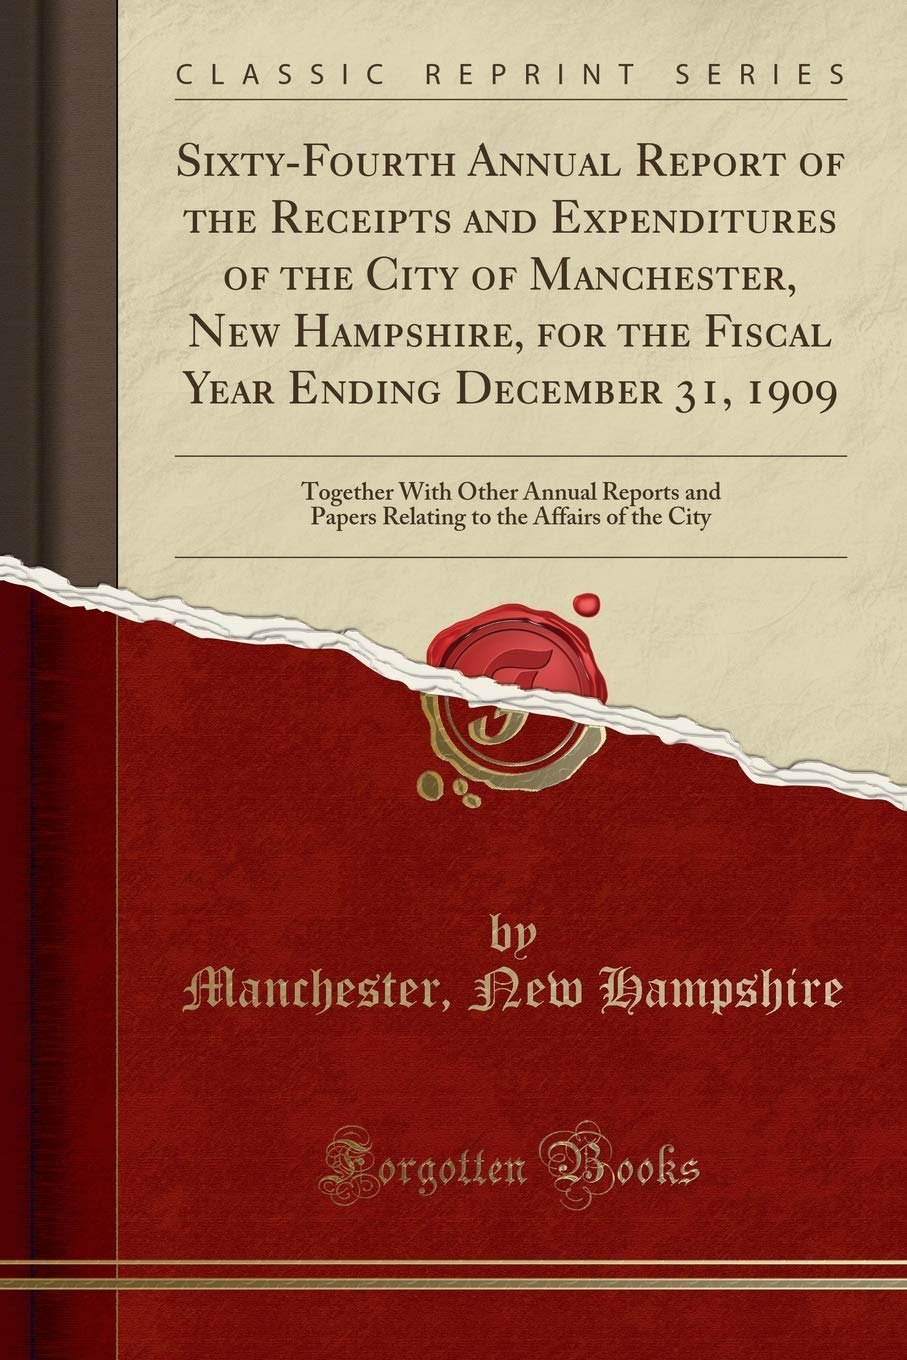 Download Sixty-Fourth Annual Report of the Receipts and Expenditures of the City of Manchester, New Hampshire, for the Fiscal Year Ending December 31, 1909: ... to the Affairs of the City (Classic Reprint) pdf